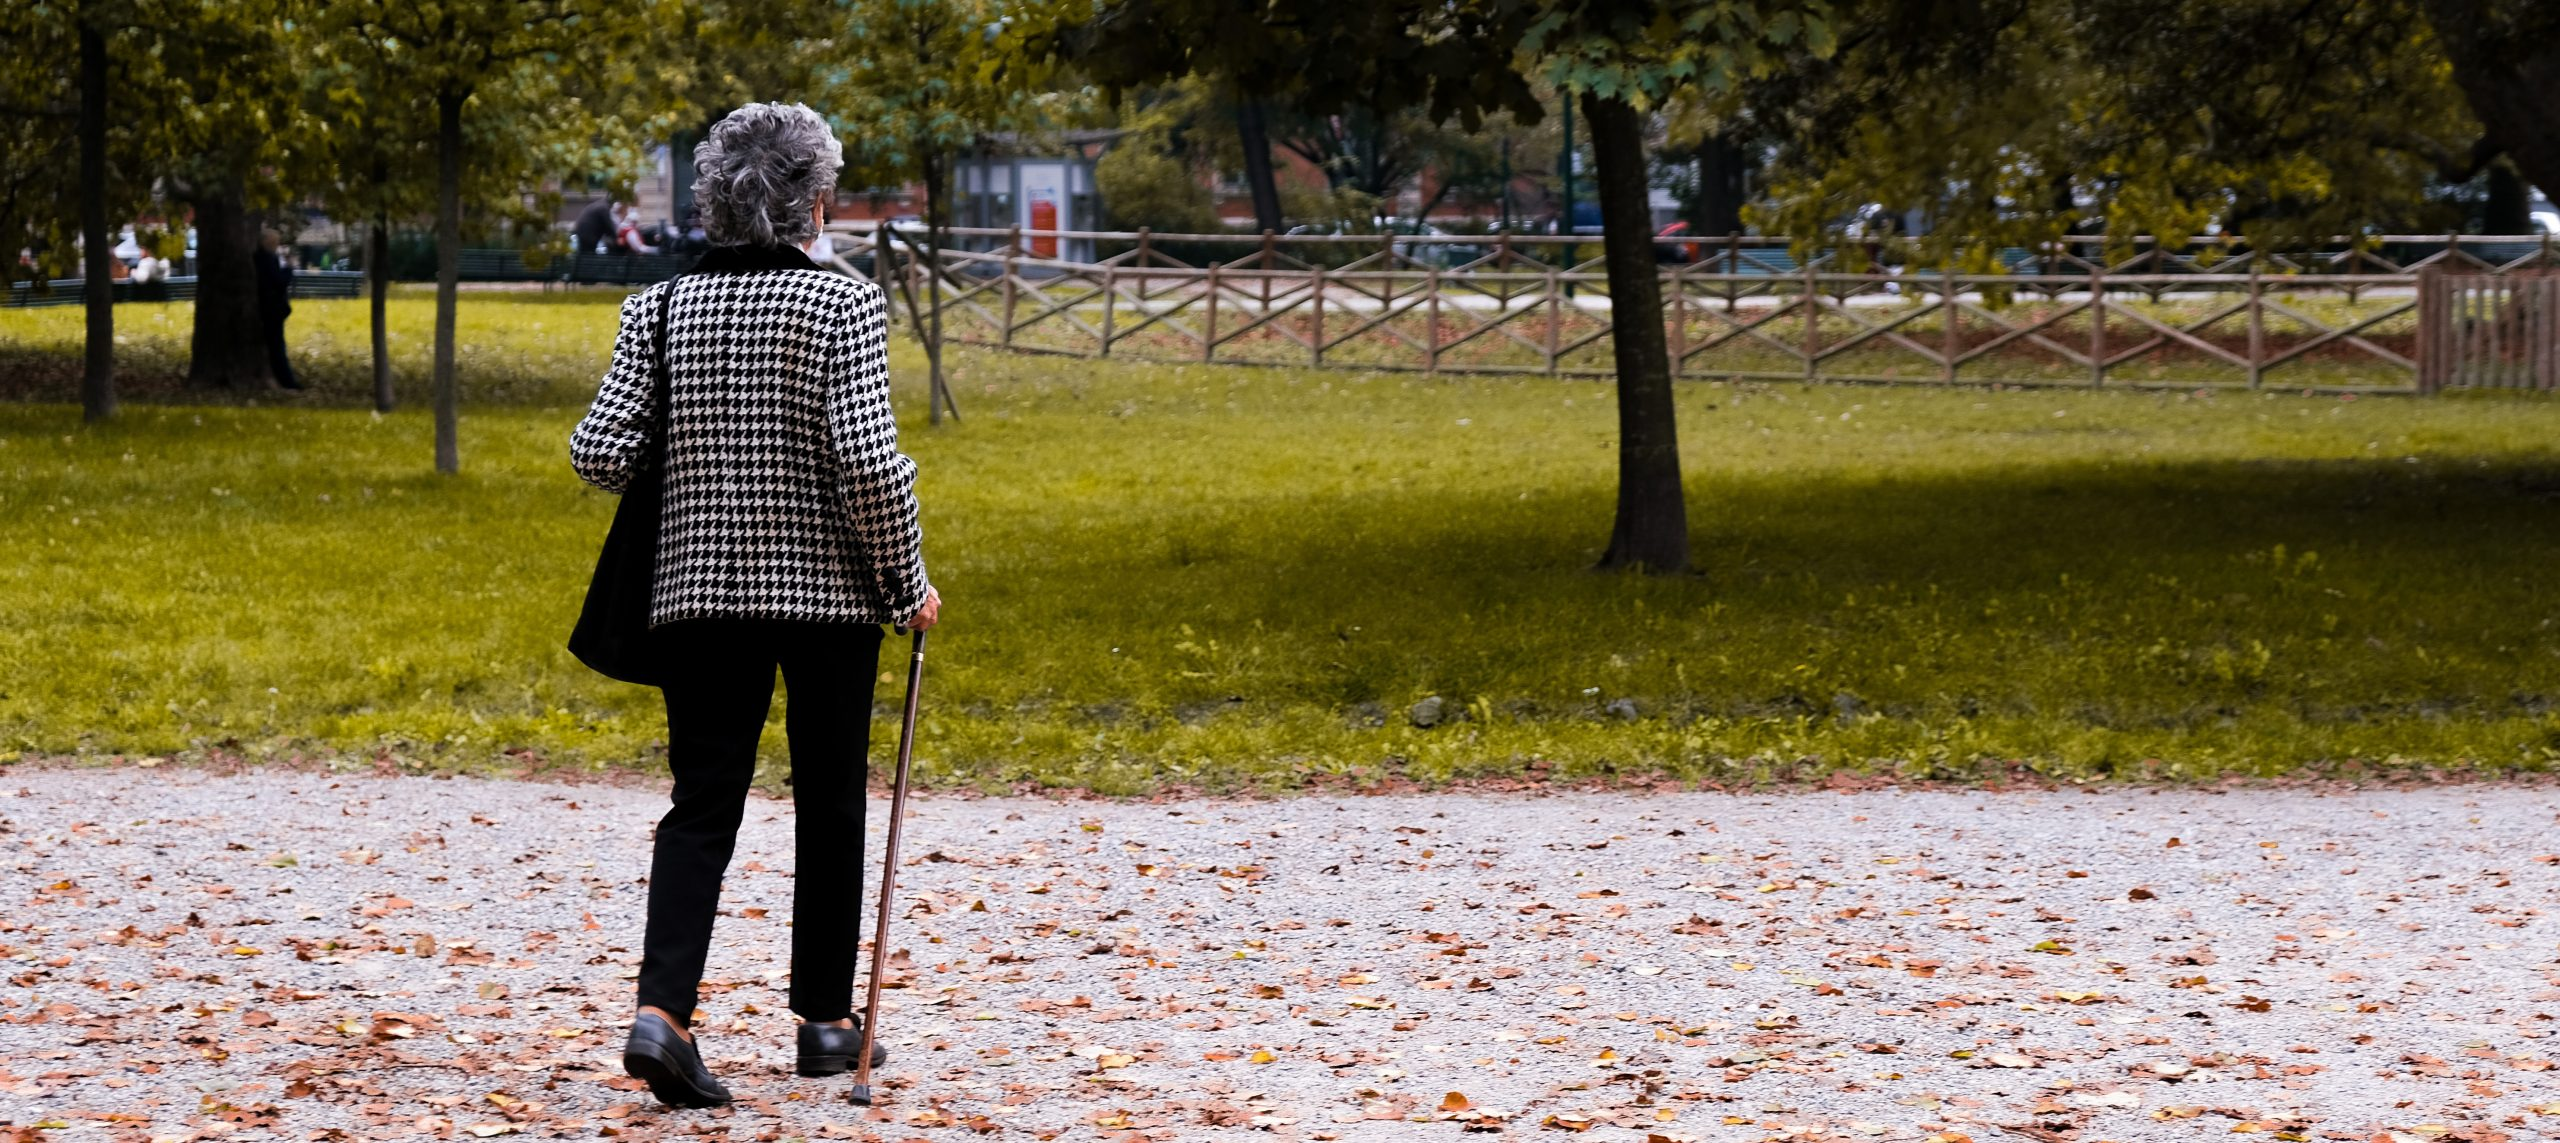 Walking, like this elderly woman is doing, is a great part of treating PAD.